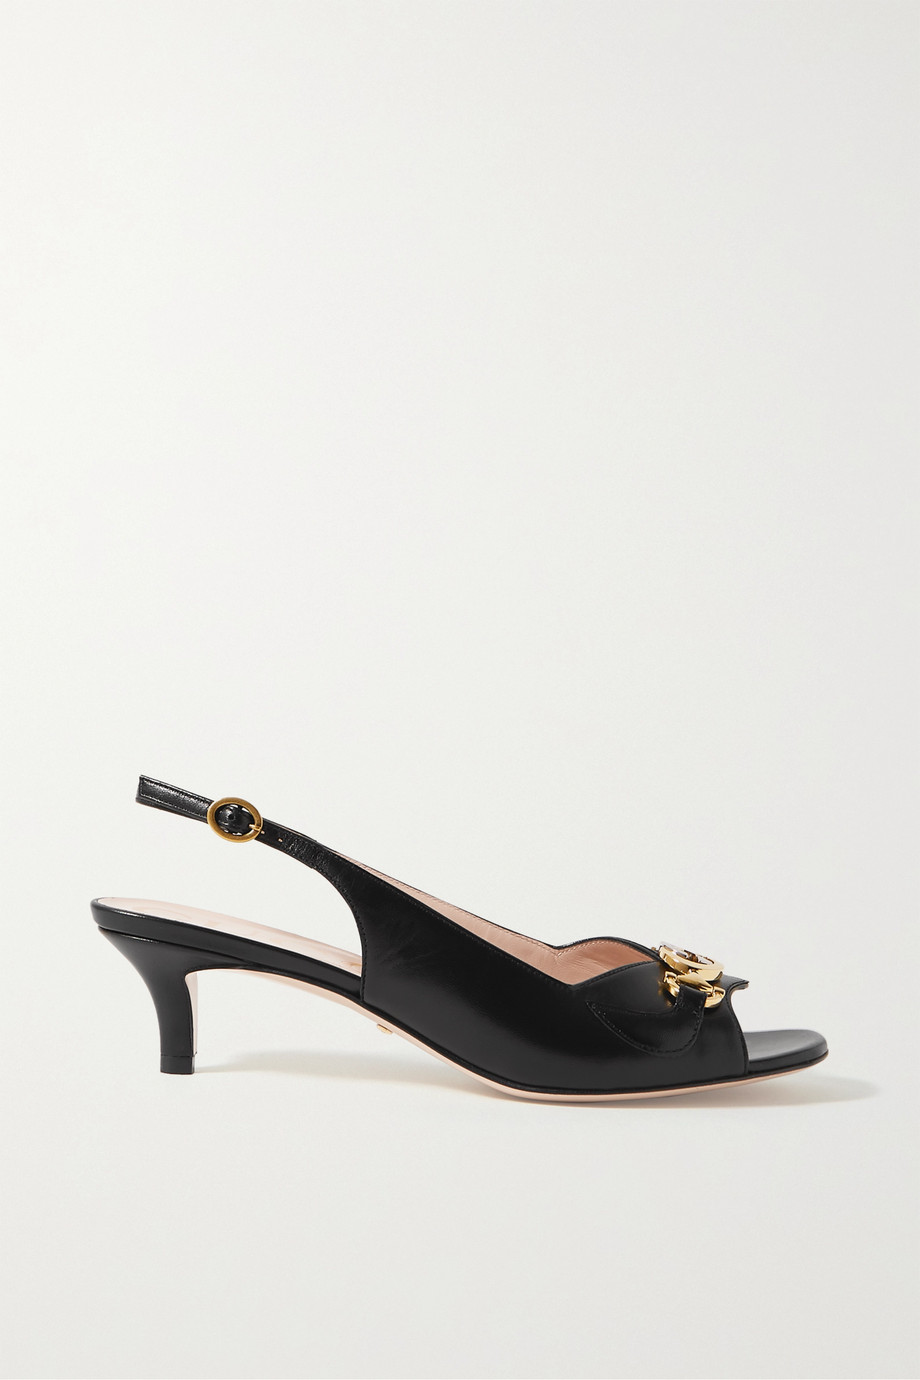 GUCCI Zumi embellished leather slingback sandals